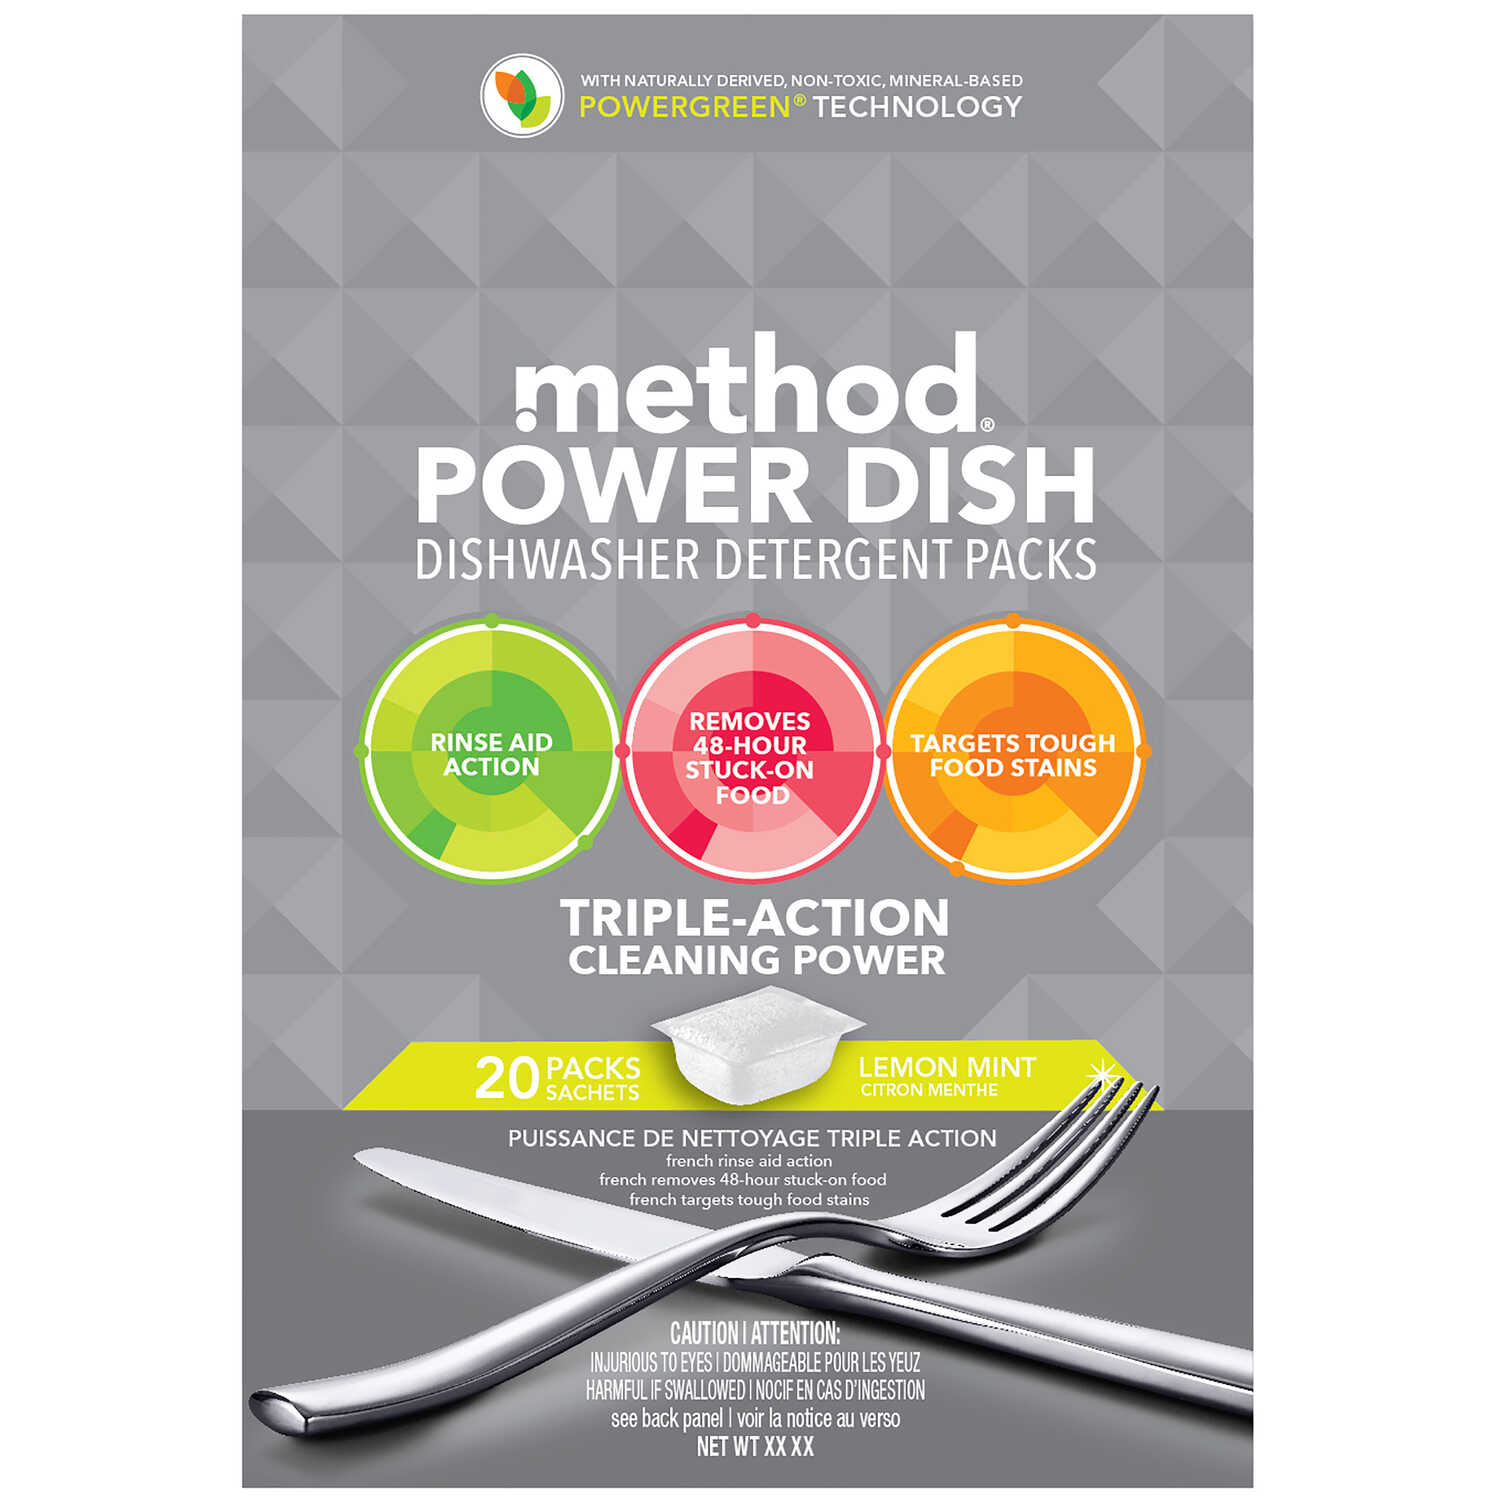 Method  Power Dish  Lemon Mint Scent Pods  Dishwasher Detergent  20 pk